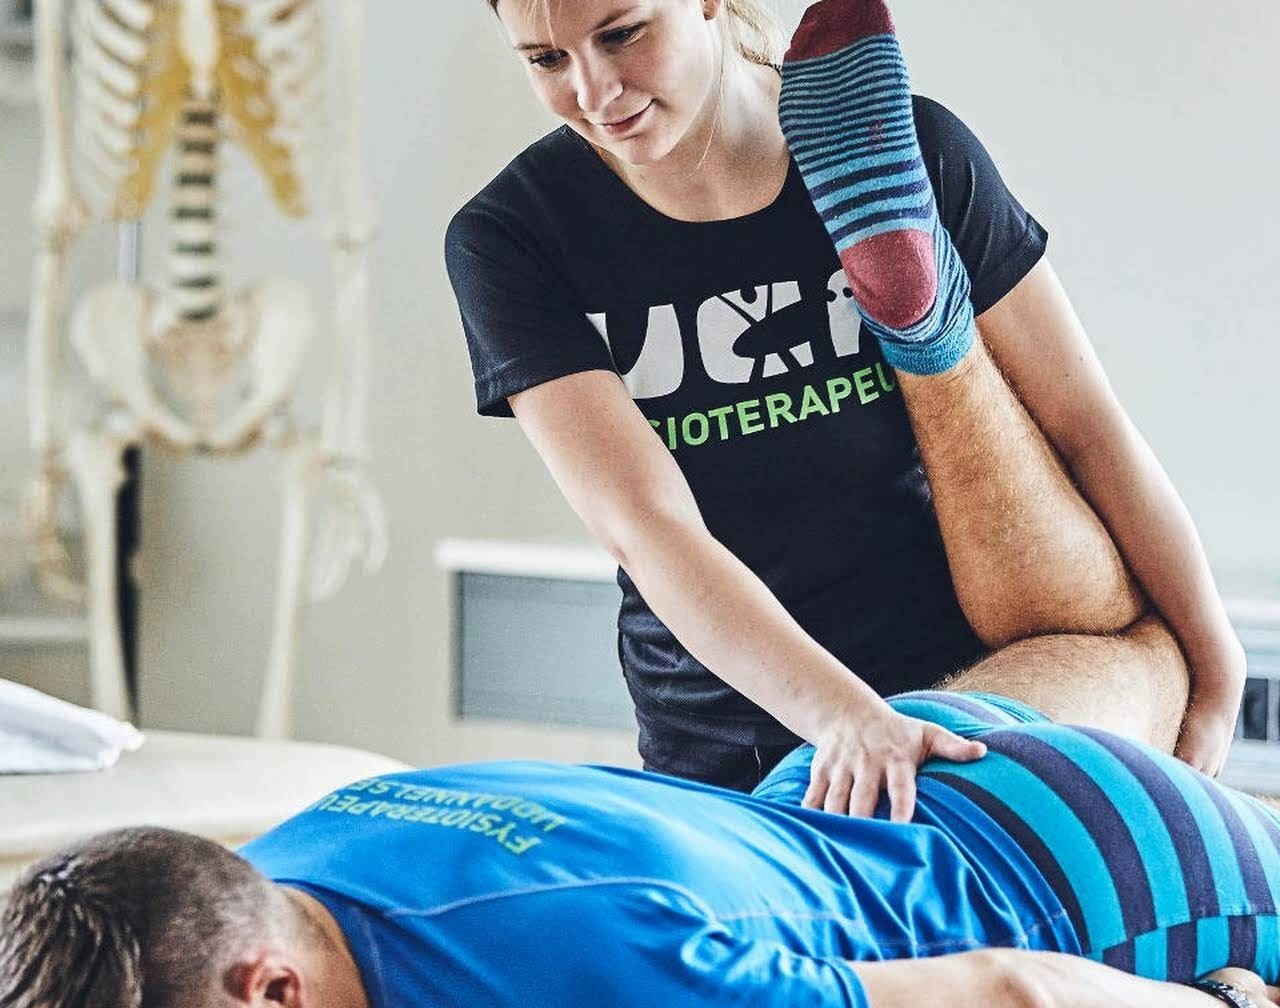 Bounceback physiotherapy and Pain Management Clinic